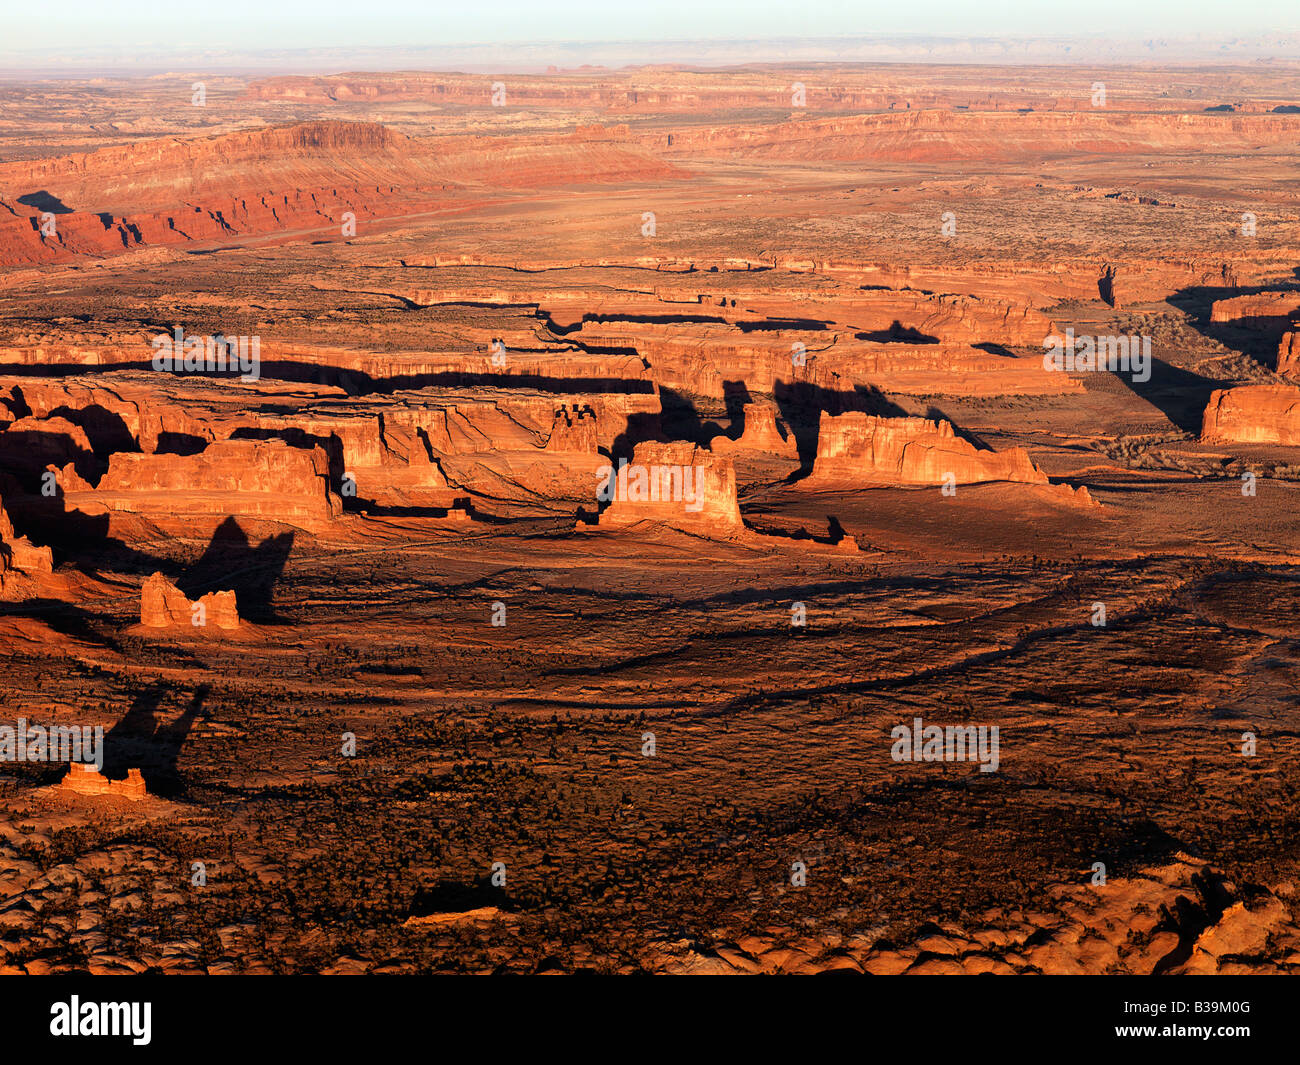 Aerial landscape of rock formations in Canyonlands National Park Utah United States - Stock Image